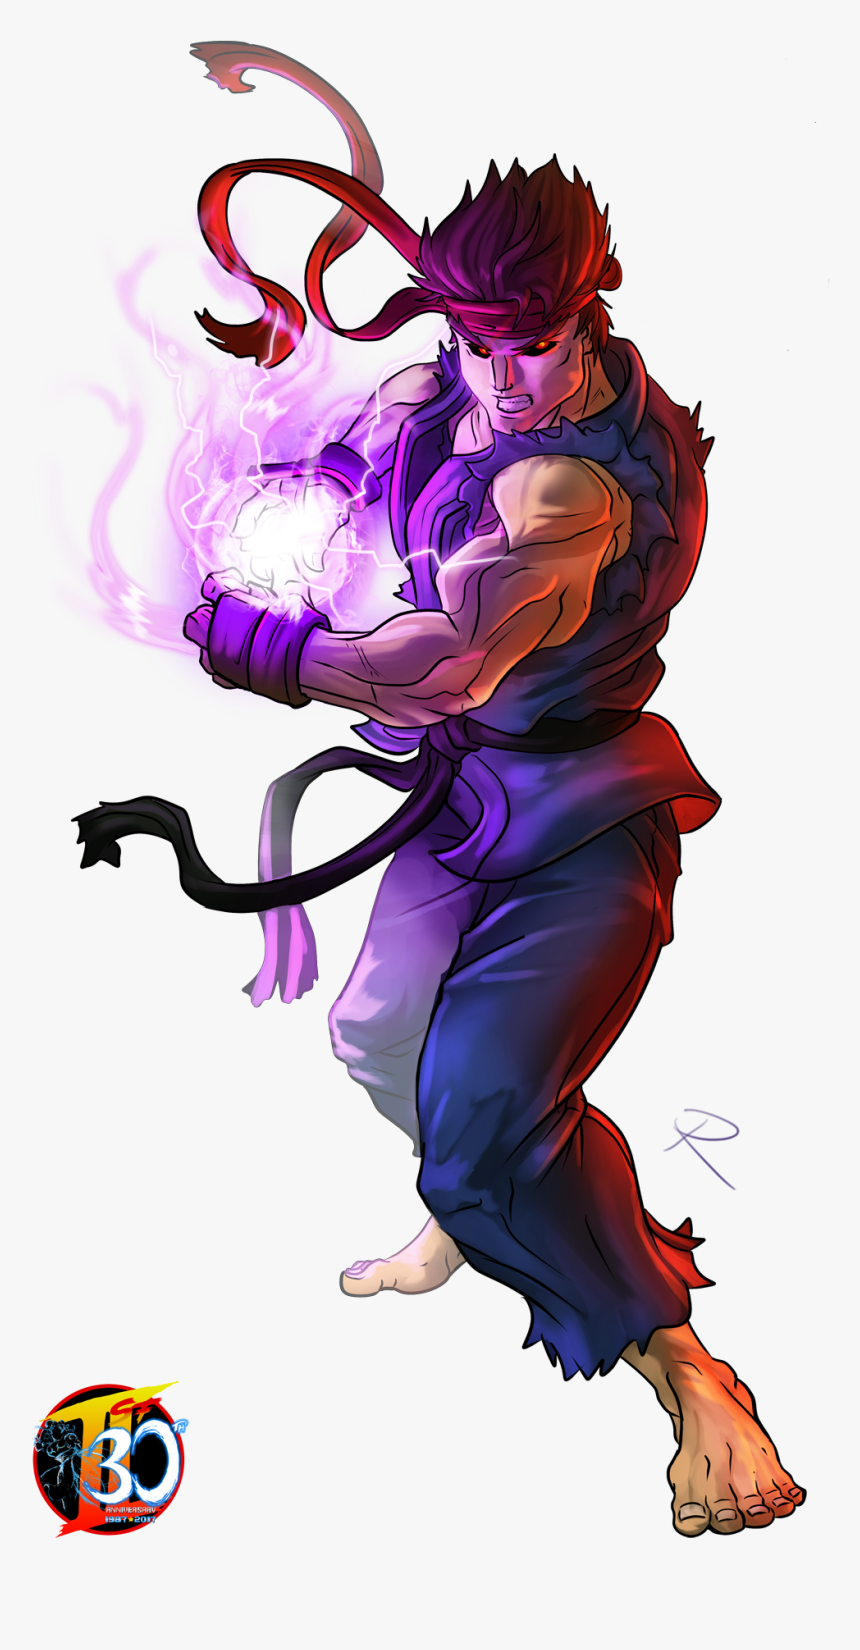 Transparent Ryu Street Fighter 5 Png Ryu Street Fighter Png Png